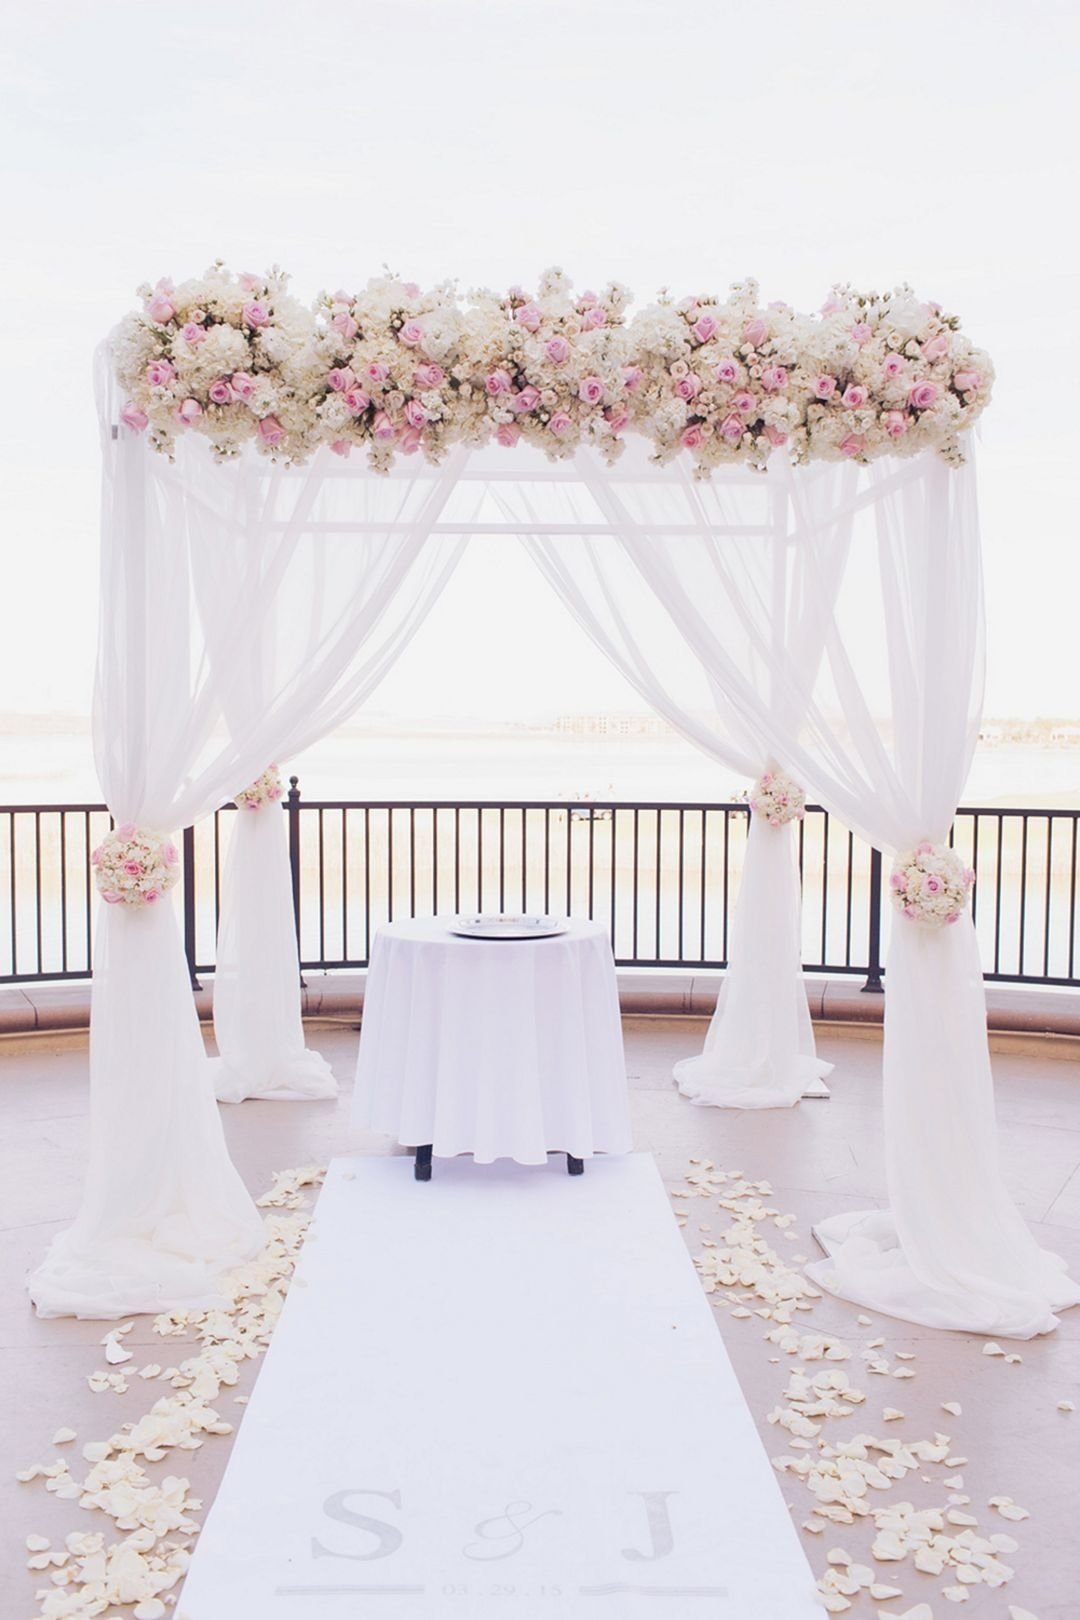 10 Stunning Pink And White Wedding Ideas gloomy 50 most popular white wedding decoration ideas for your 2021